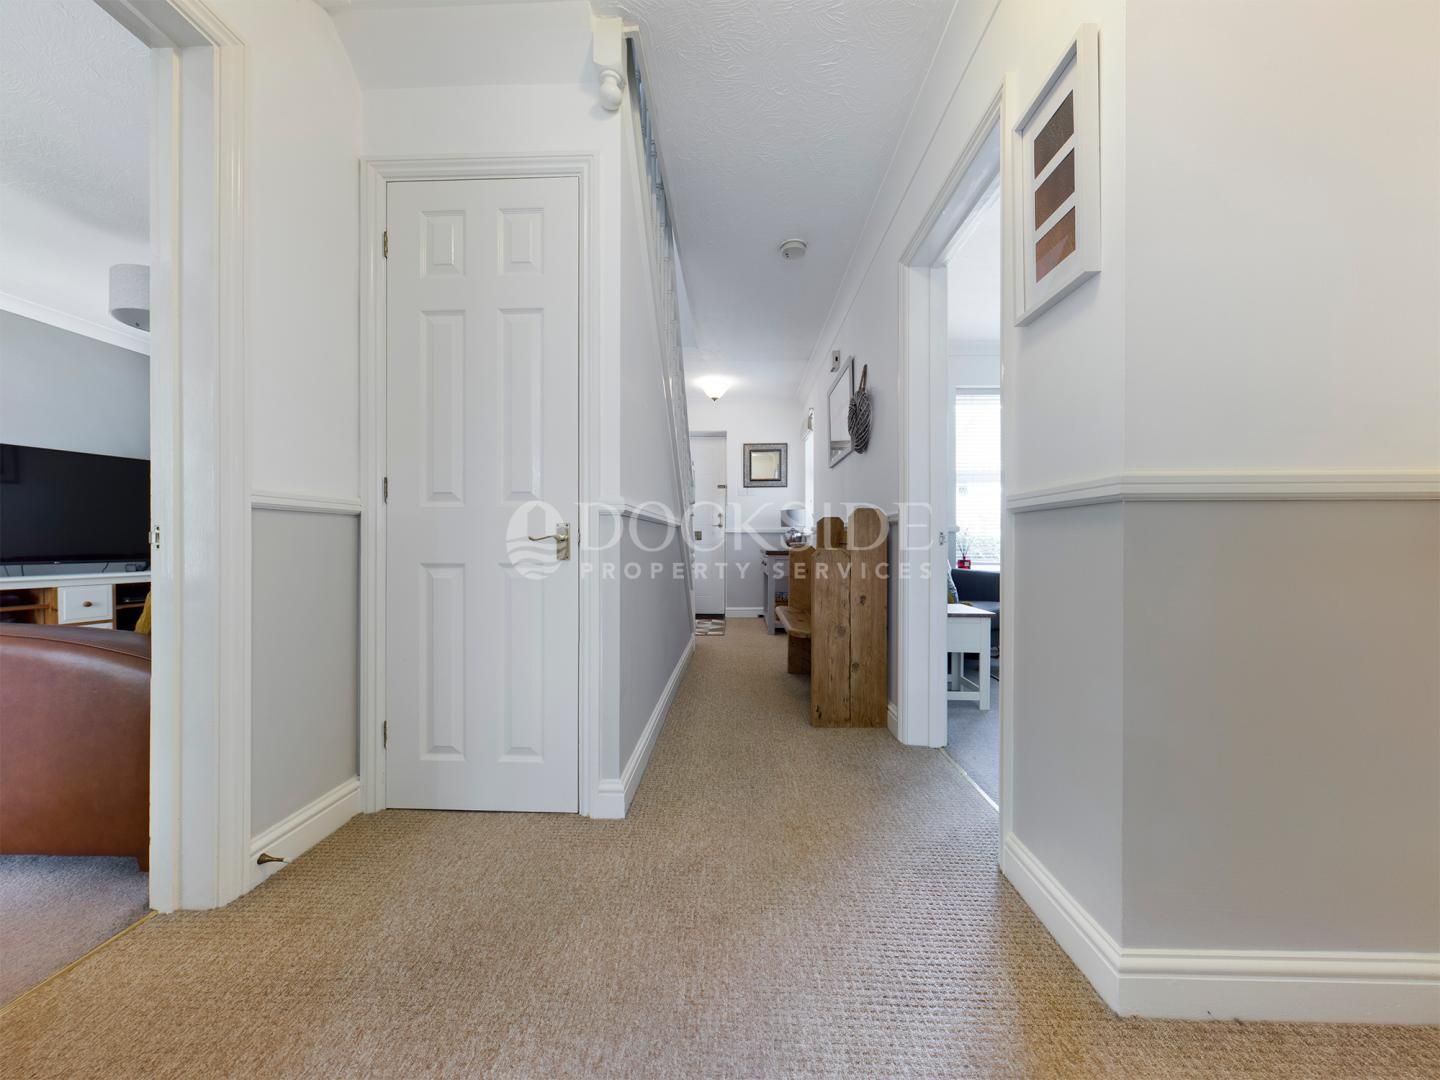 3 bed house for sale in Haven Way  - Property Image 8